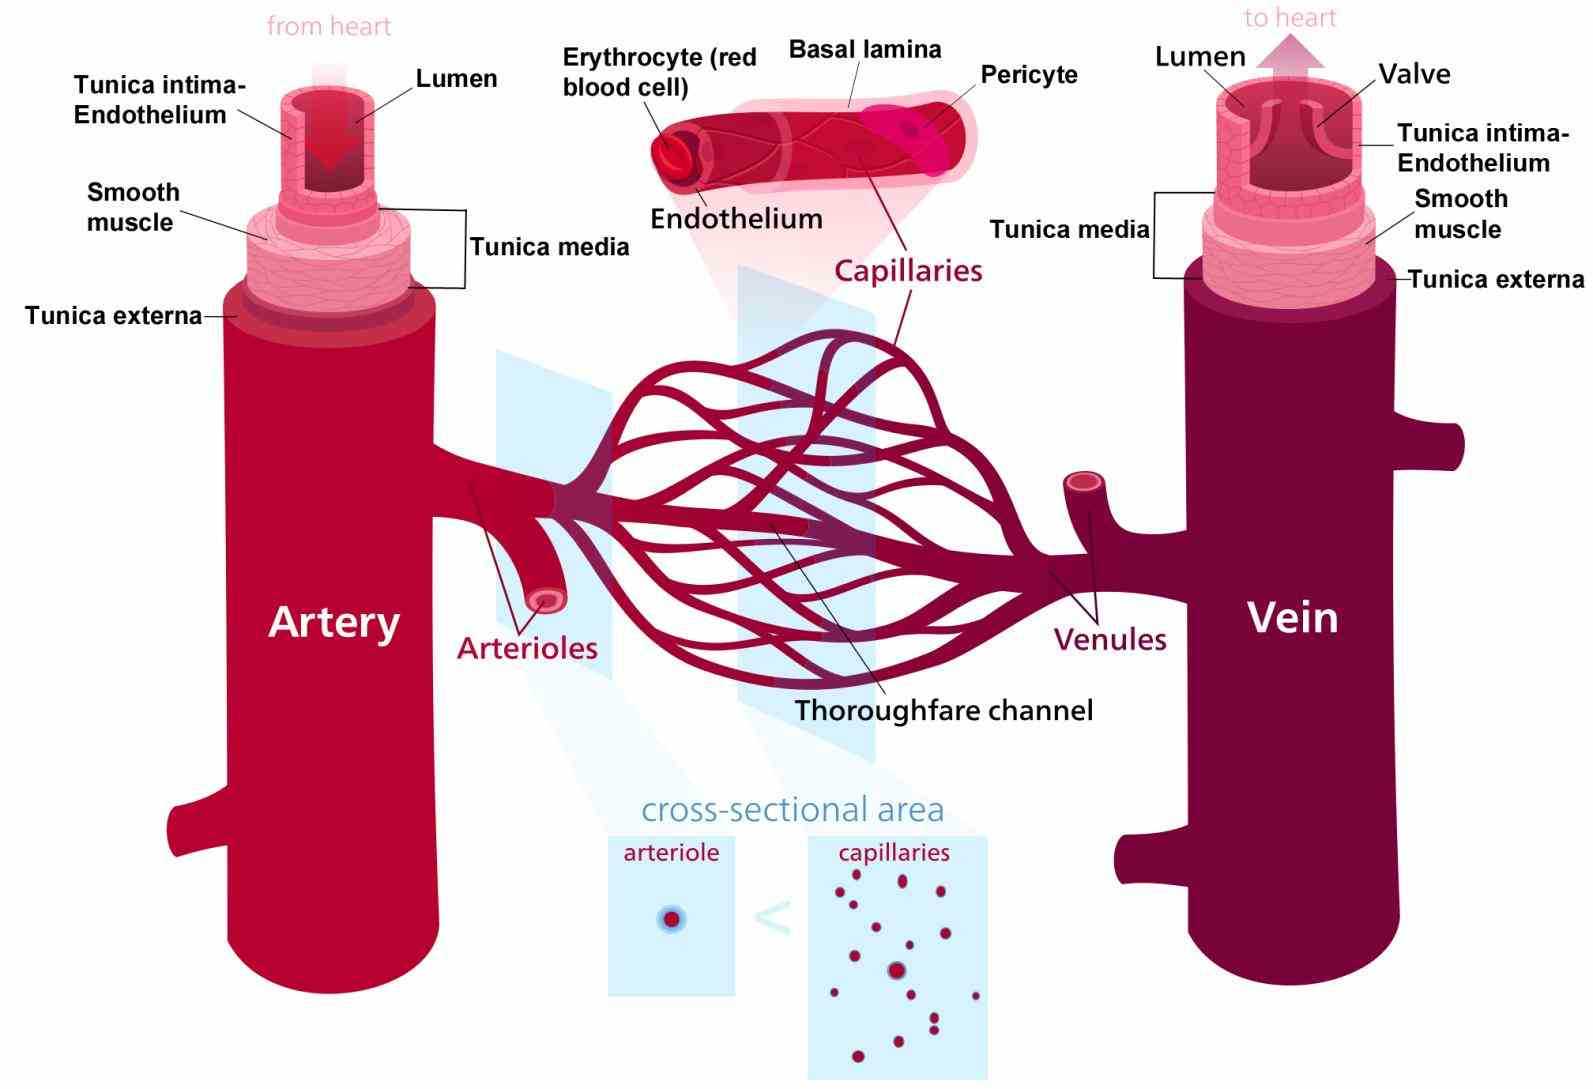 resource for ocr gcse st century science about heart disease and circulation with higher tier different Arteries Structure And